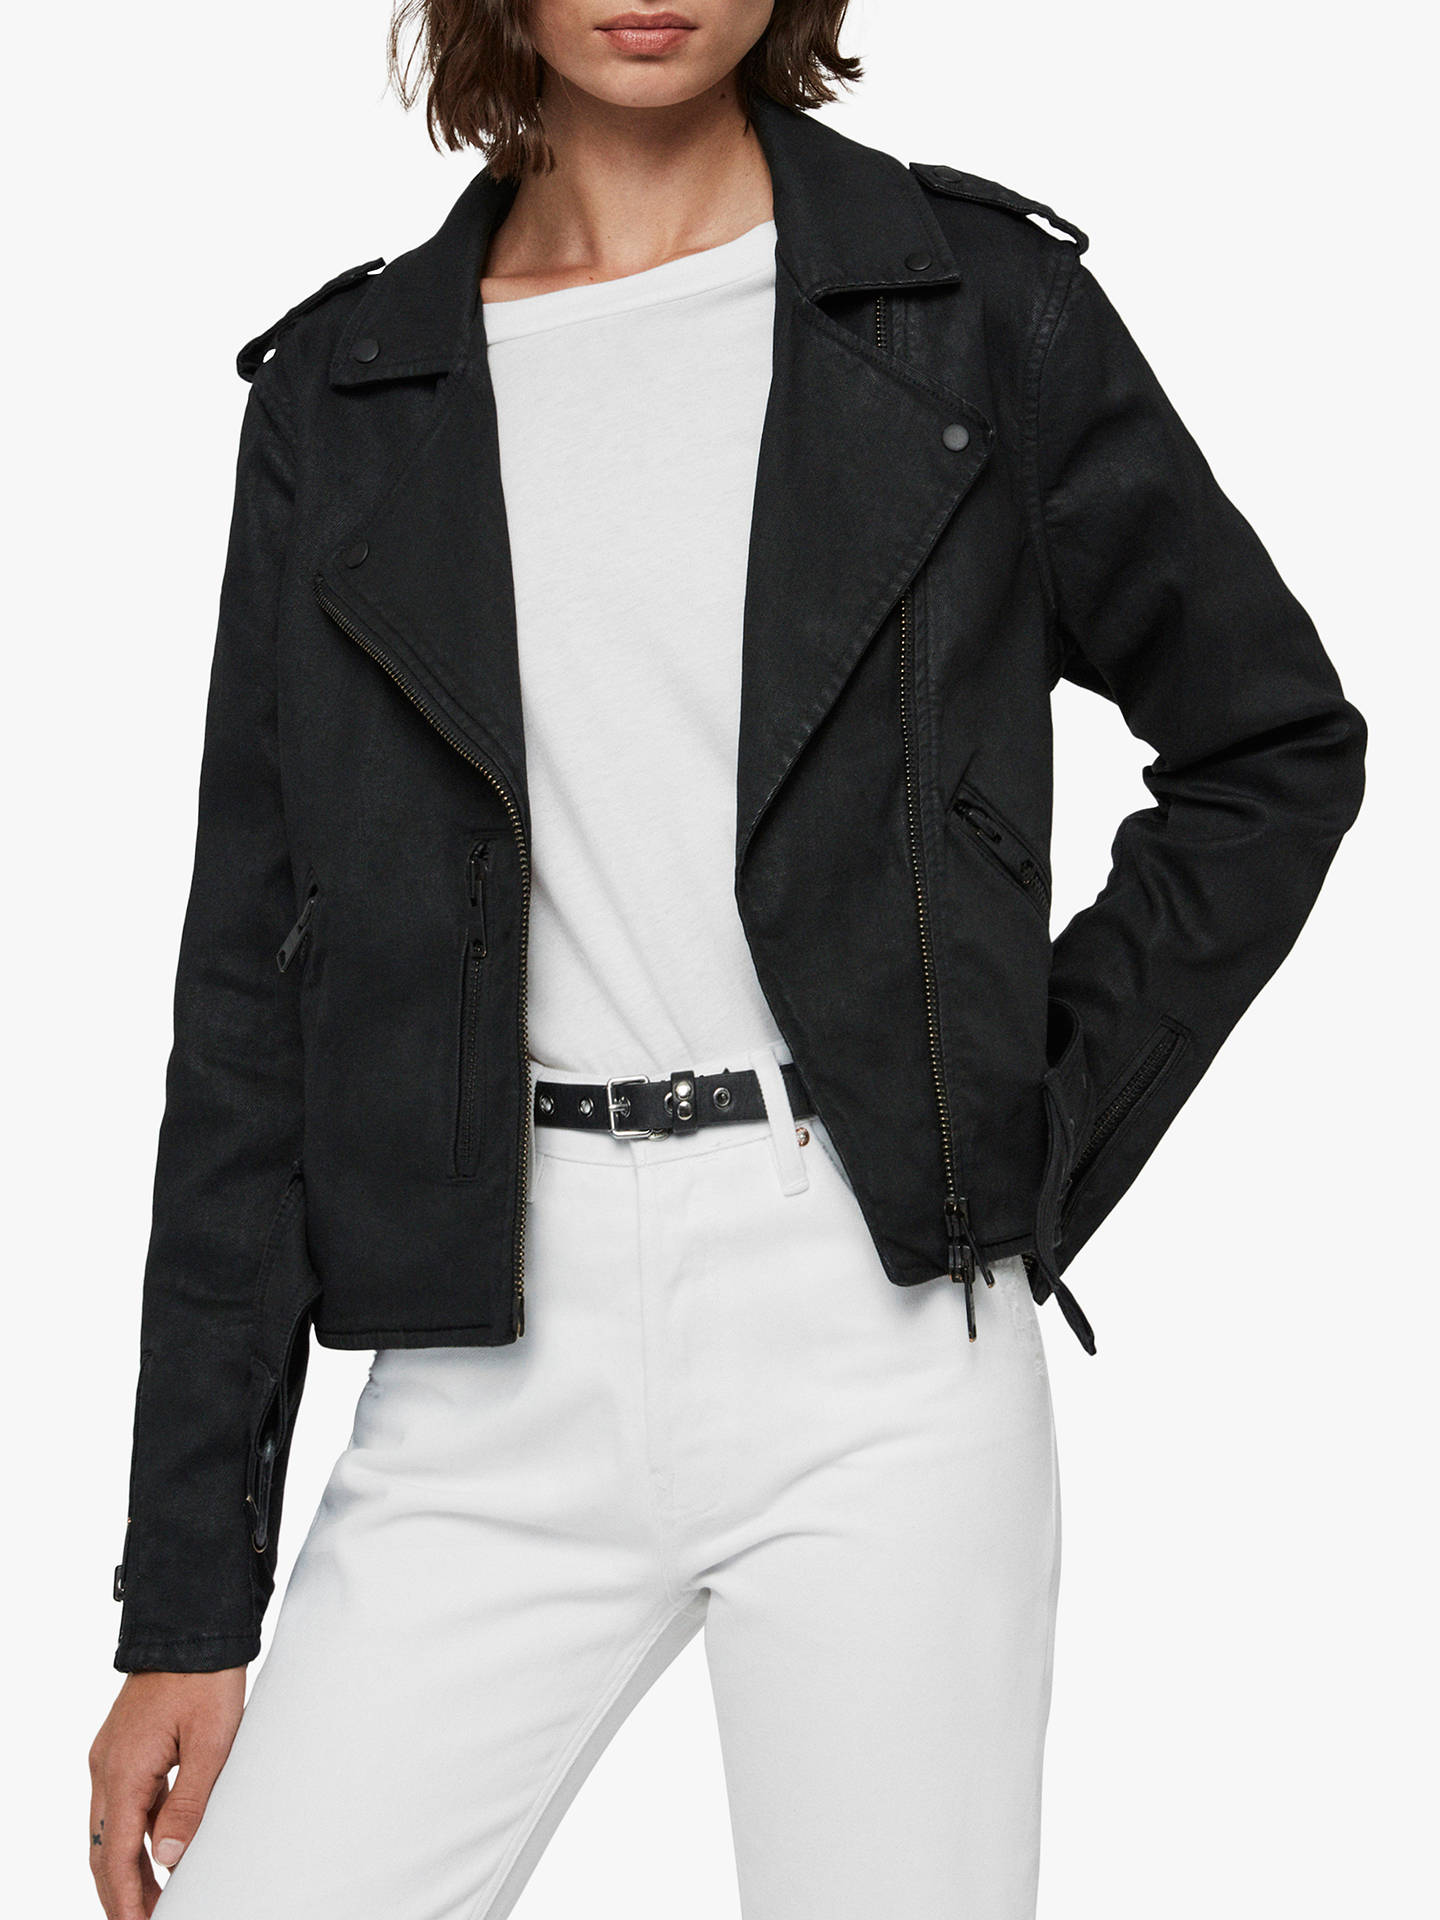 All Saints Micah Coated Denim Biker Jacket, Black by Allsaints